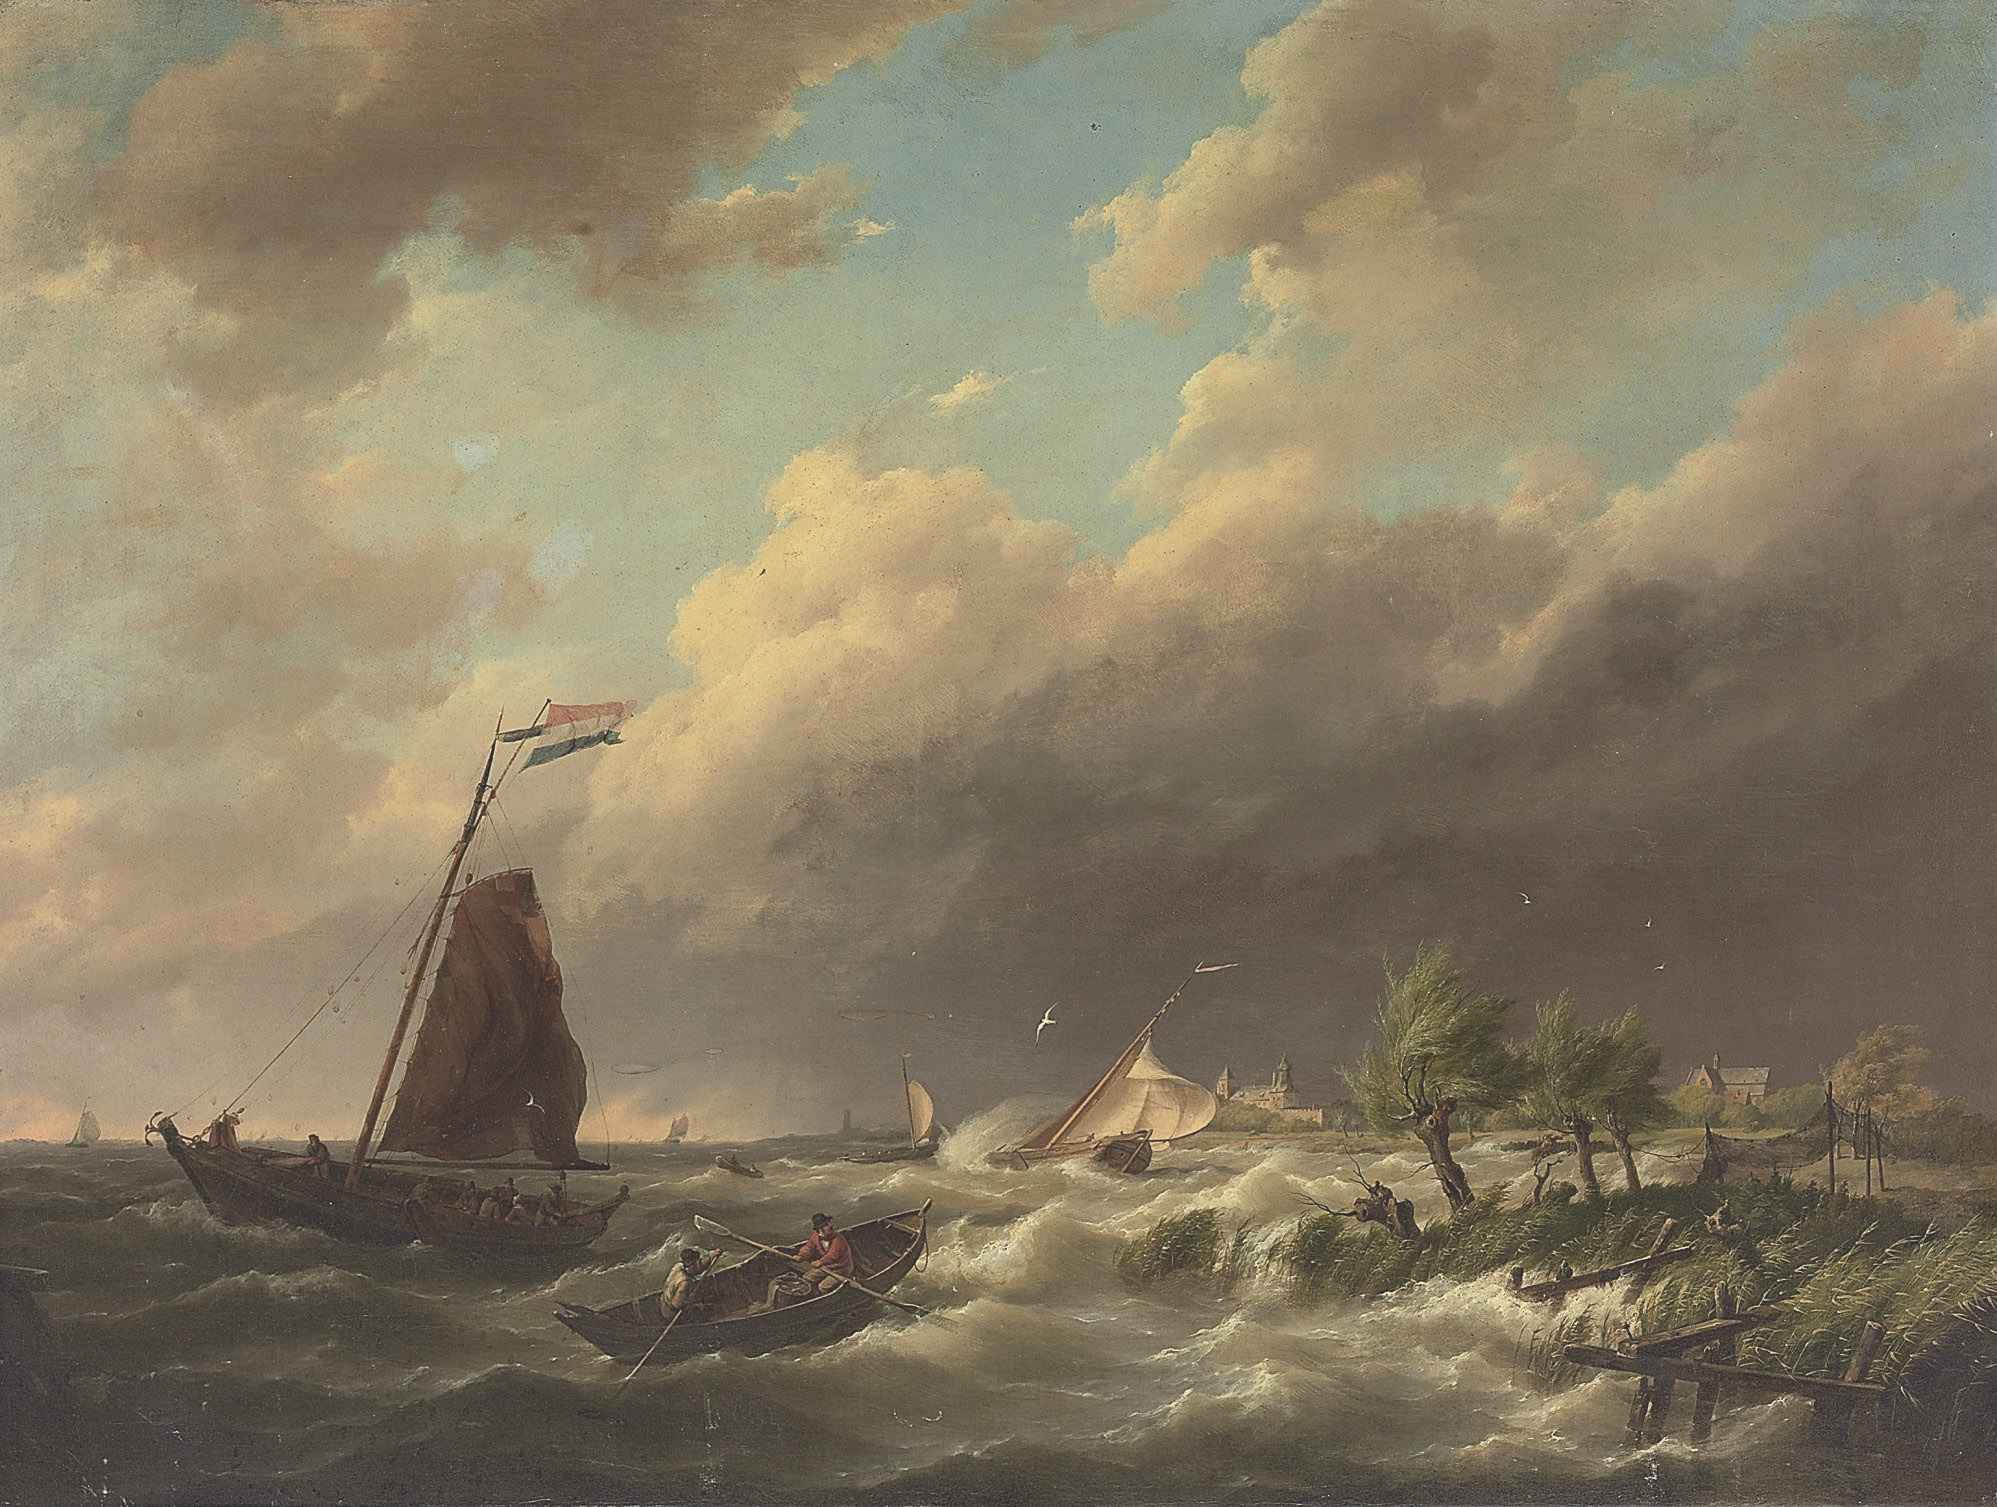 Stormy coastal scene with town beyond